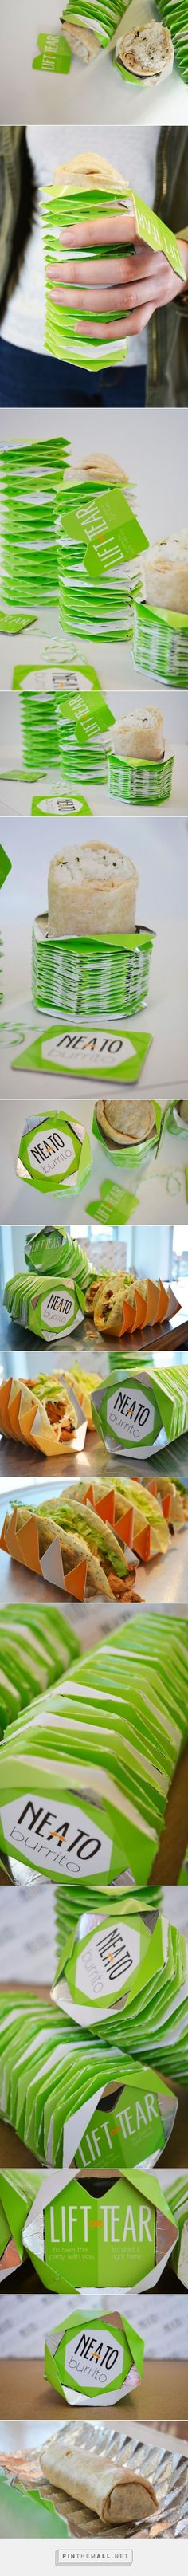 Revolutionary Neato Burrito concept packaging.